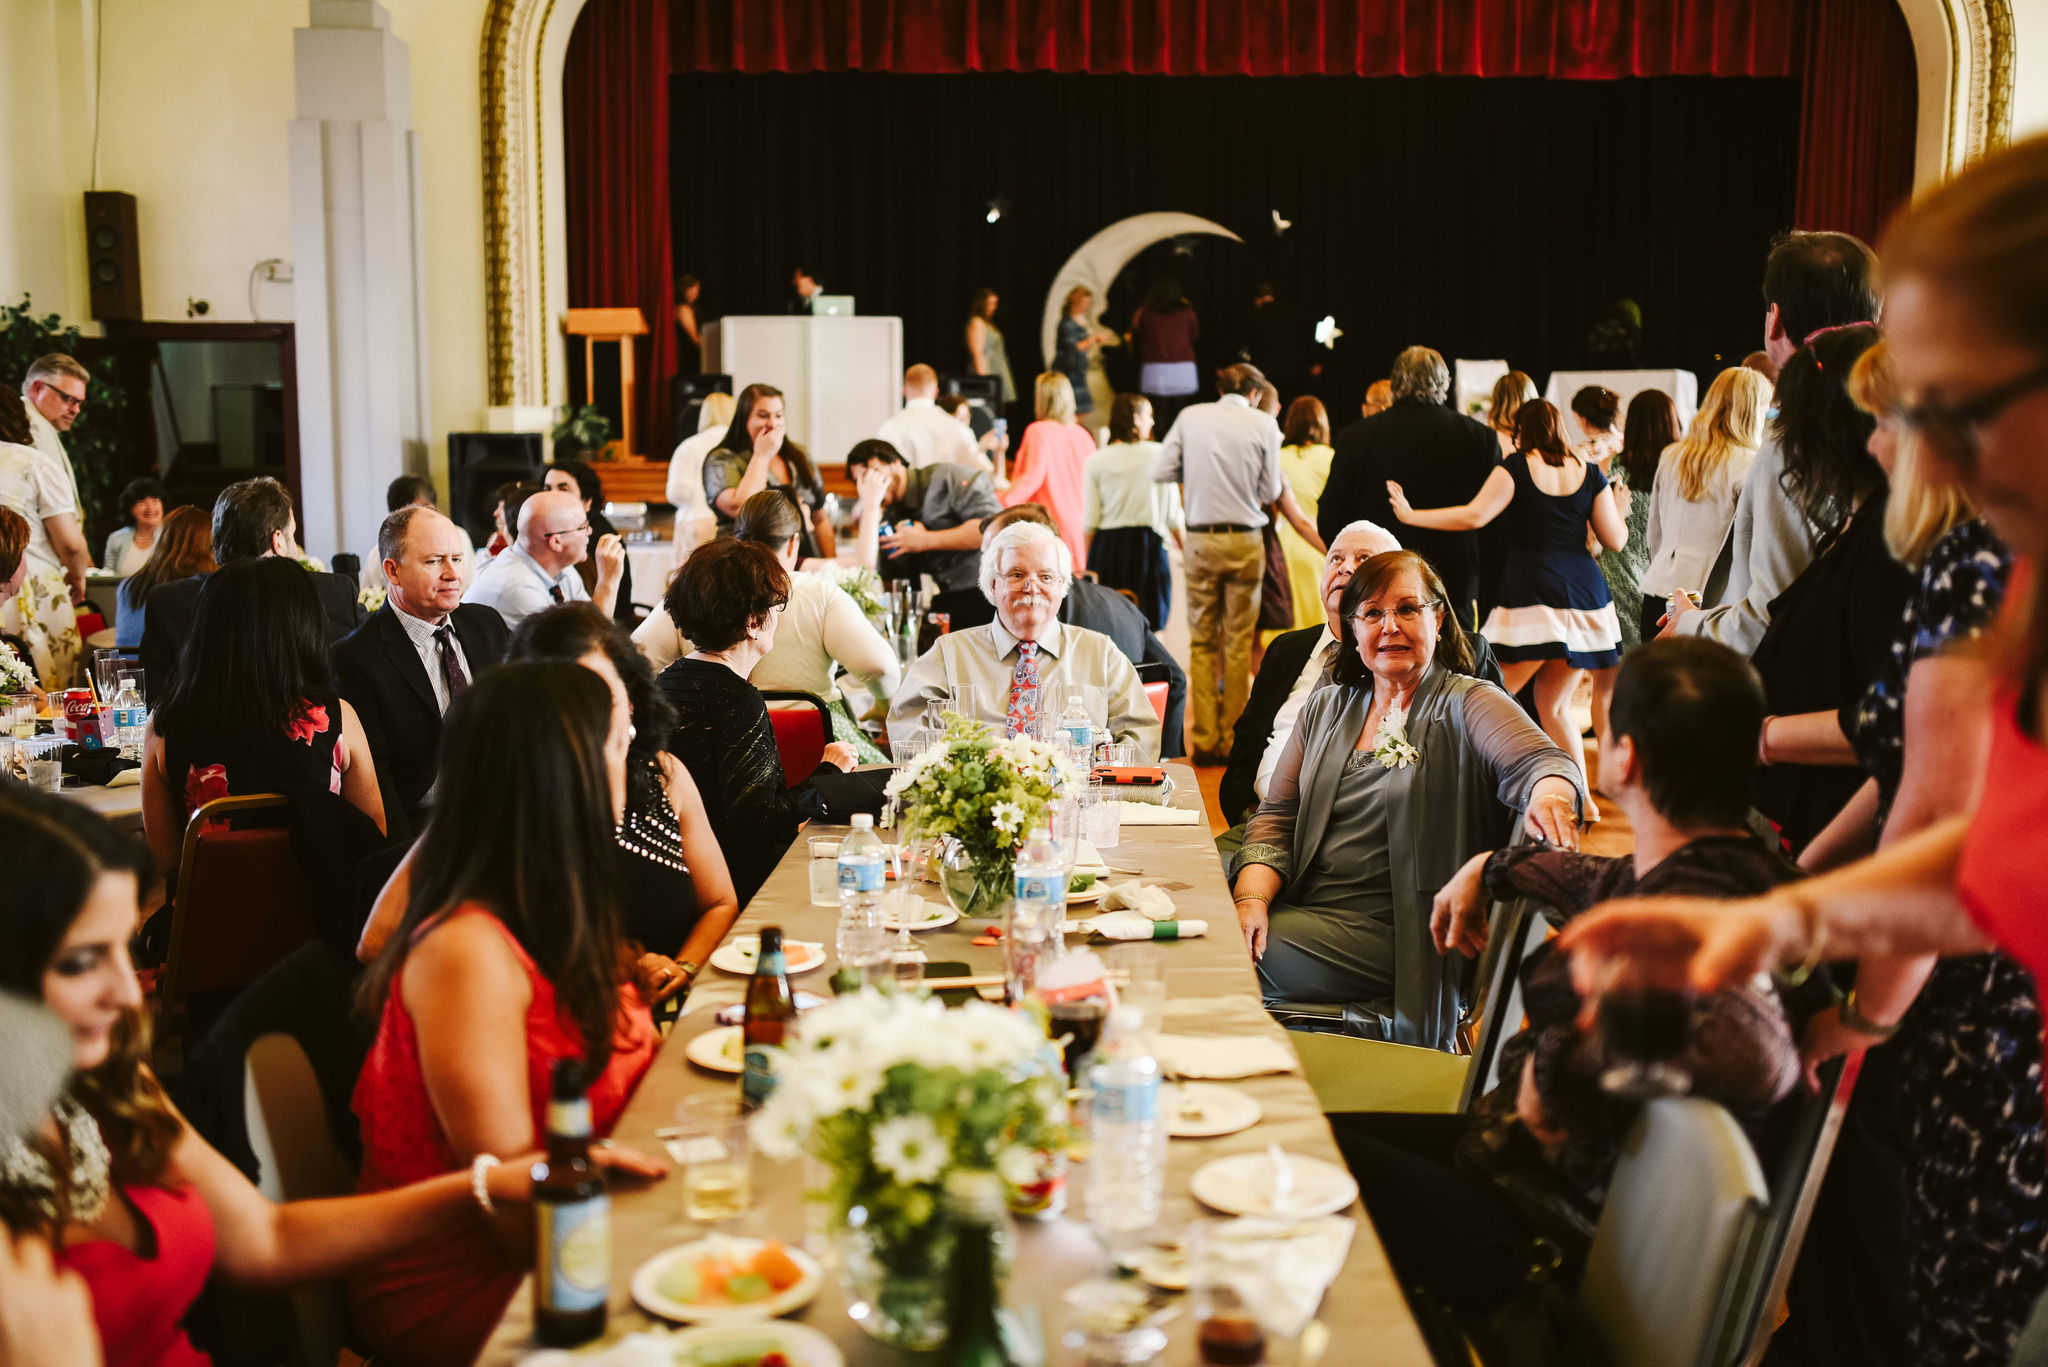 Baltimore, Lithuanian Dance Hall, Maryland Wedding Photographer, Vintage, Classic, 50s Style, Guests Chatting at Banquet Table, Reception